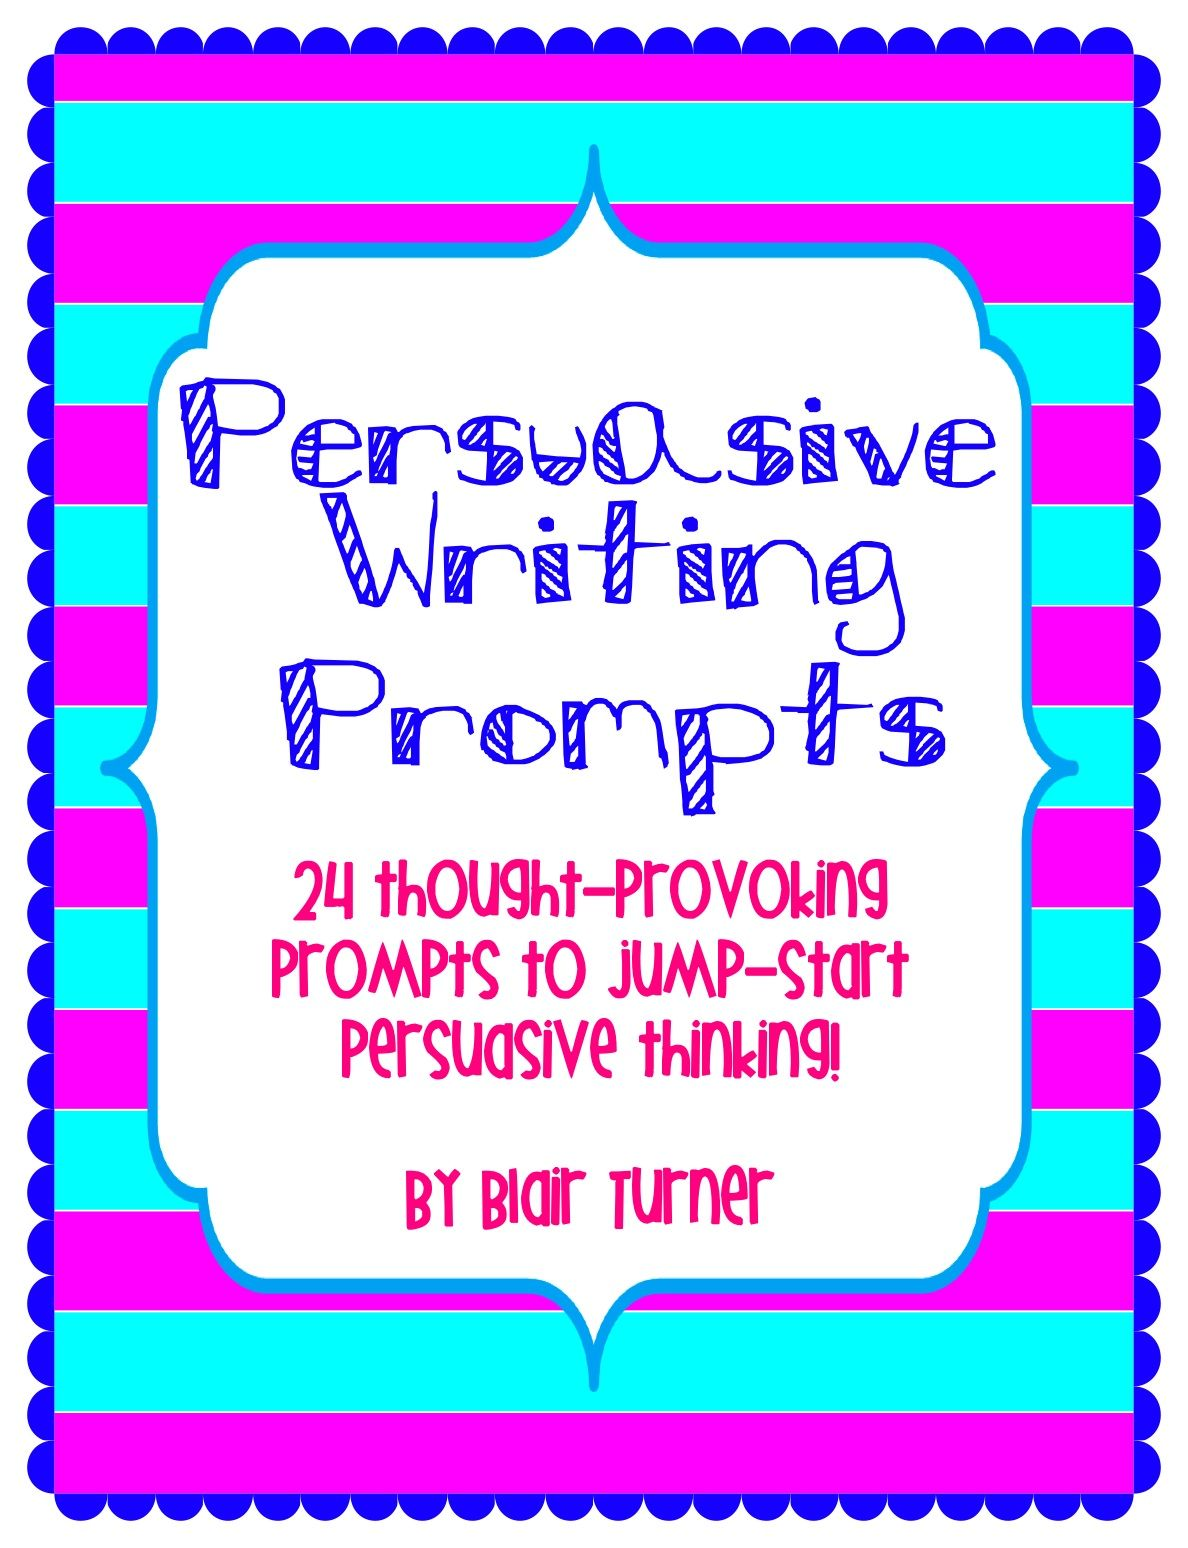 6th grade persuasive essay writing prompts